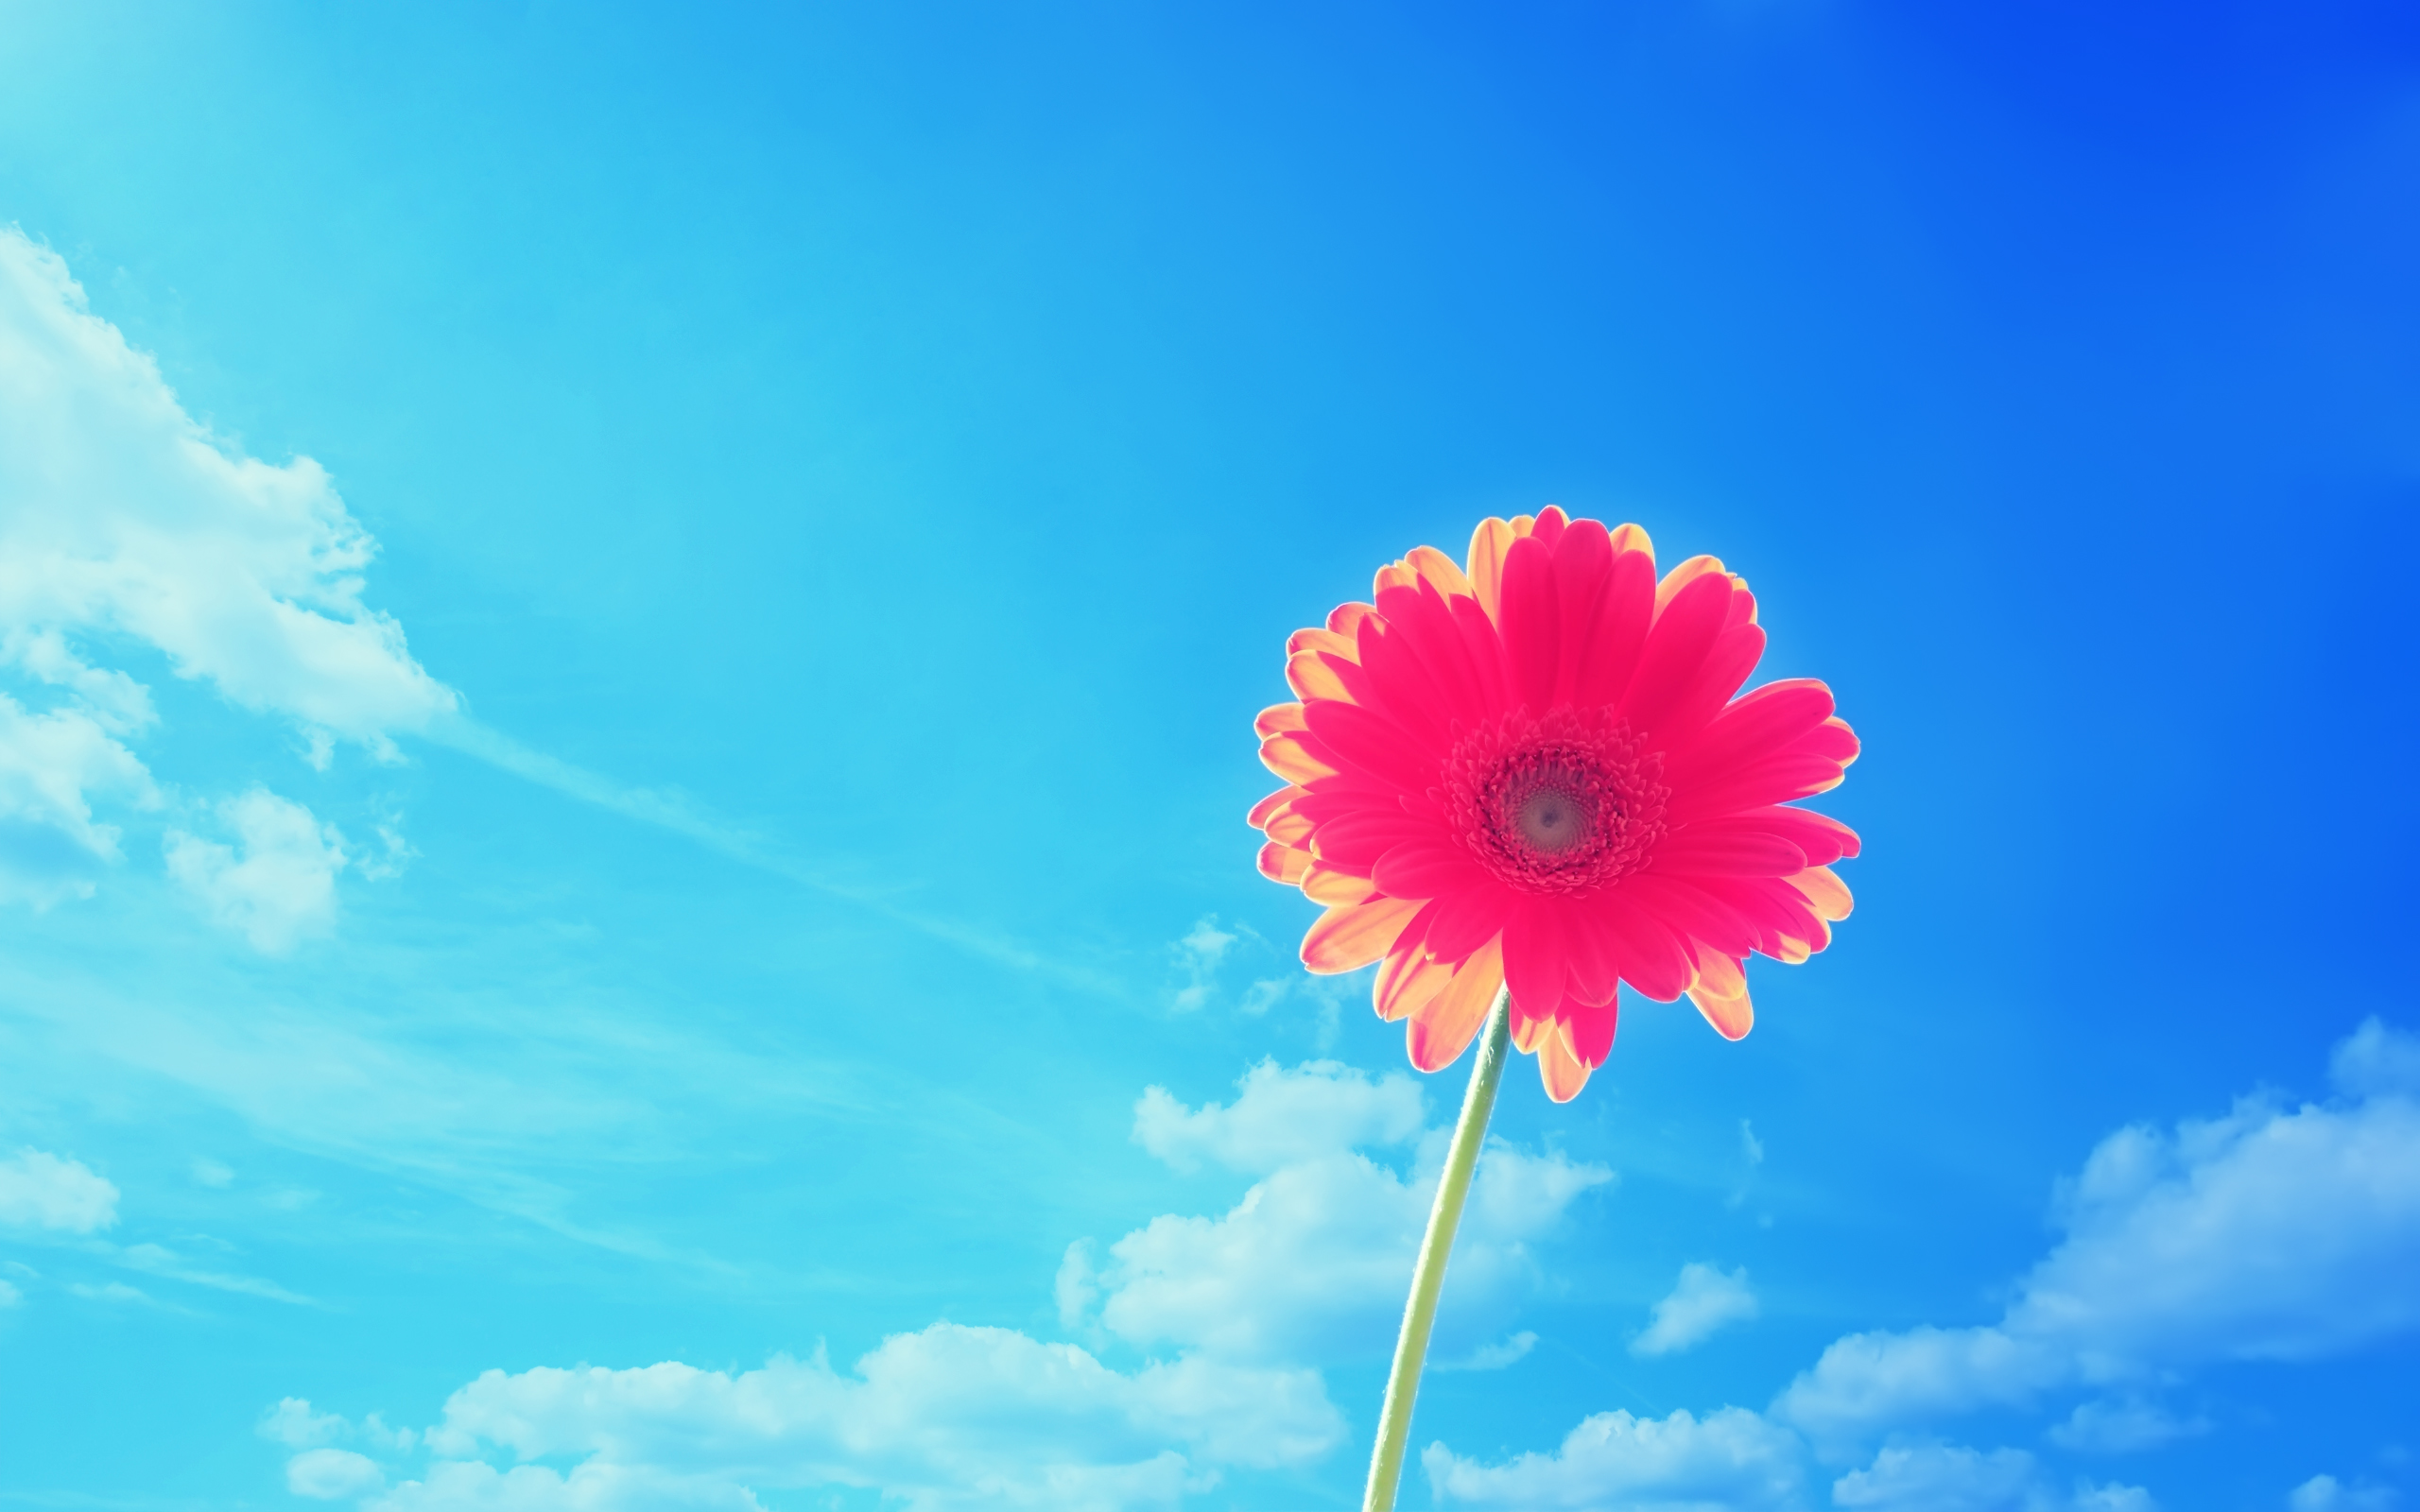 Desktop Backgrounds Wallpapers Flowers